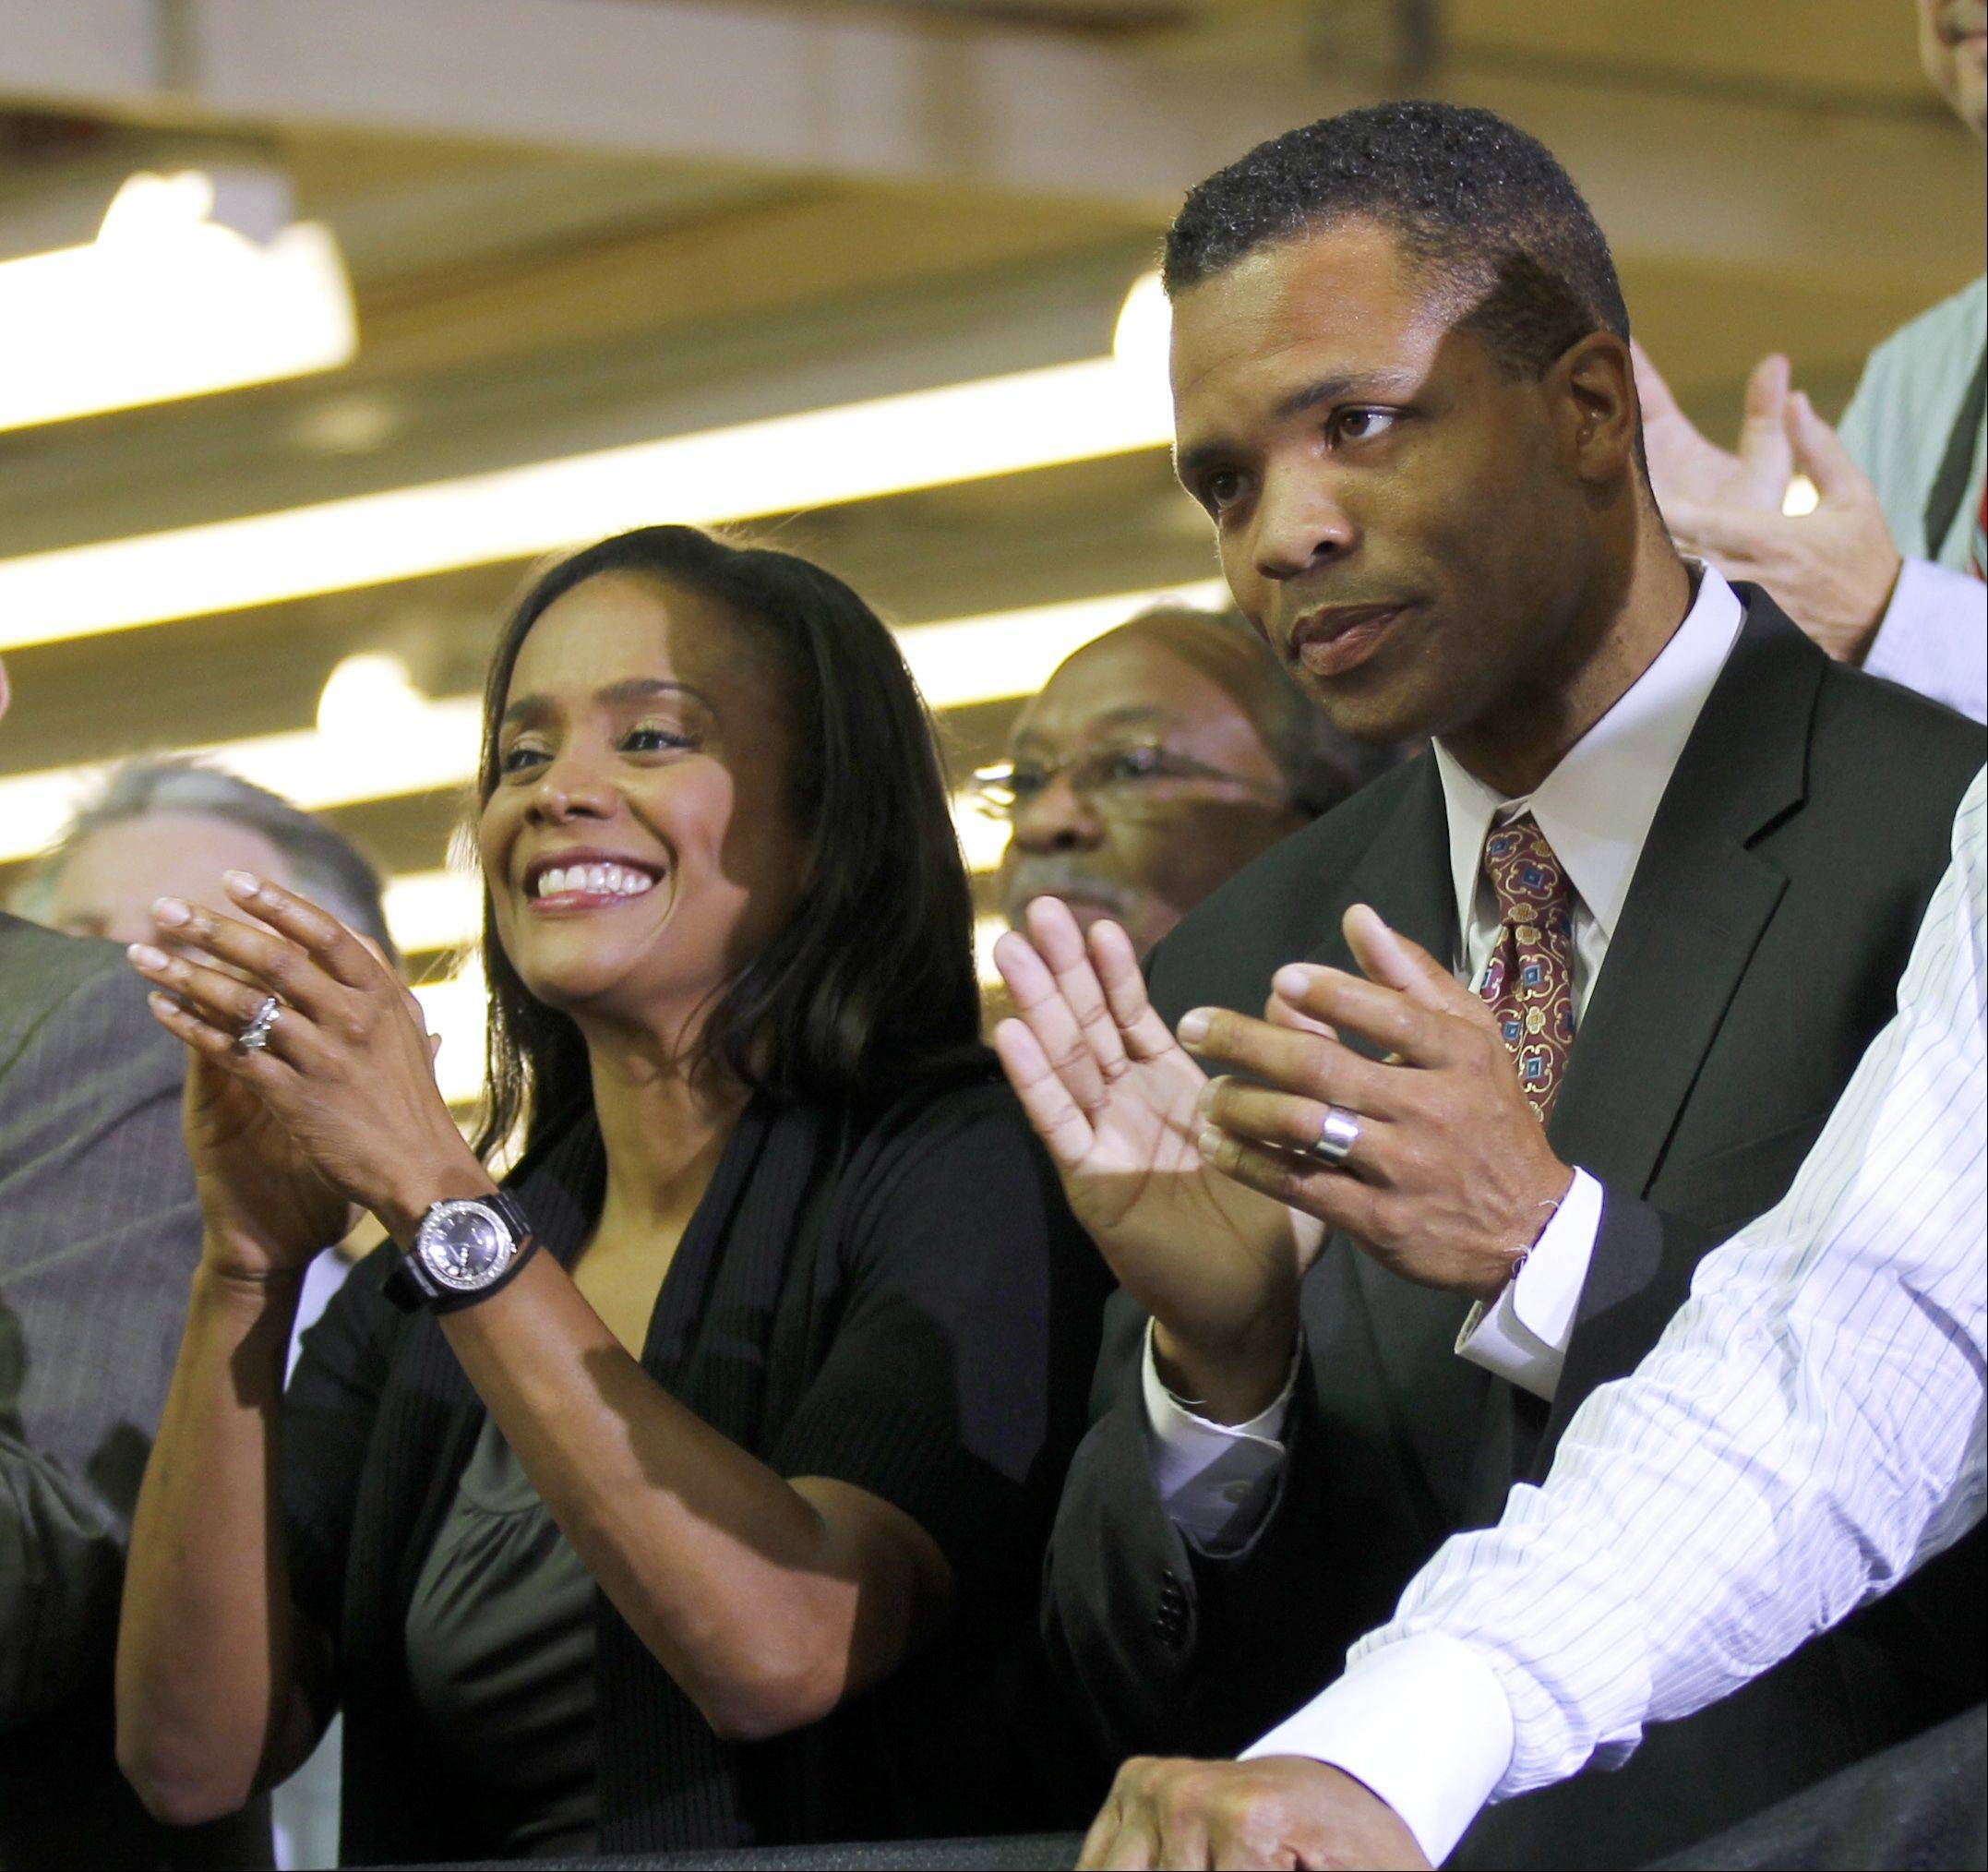 Then-Rep. Jesse Jackson Jr. and his wife, then-Chicago Alderman Sandi Jackson, applaud as President Barack Obama is introduced at Ford Motor Co. plant in Chicago in 2010.